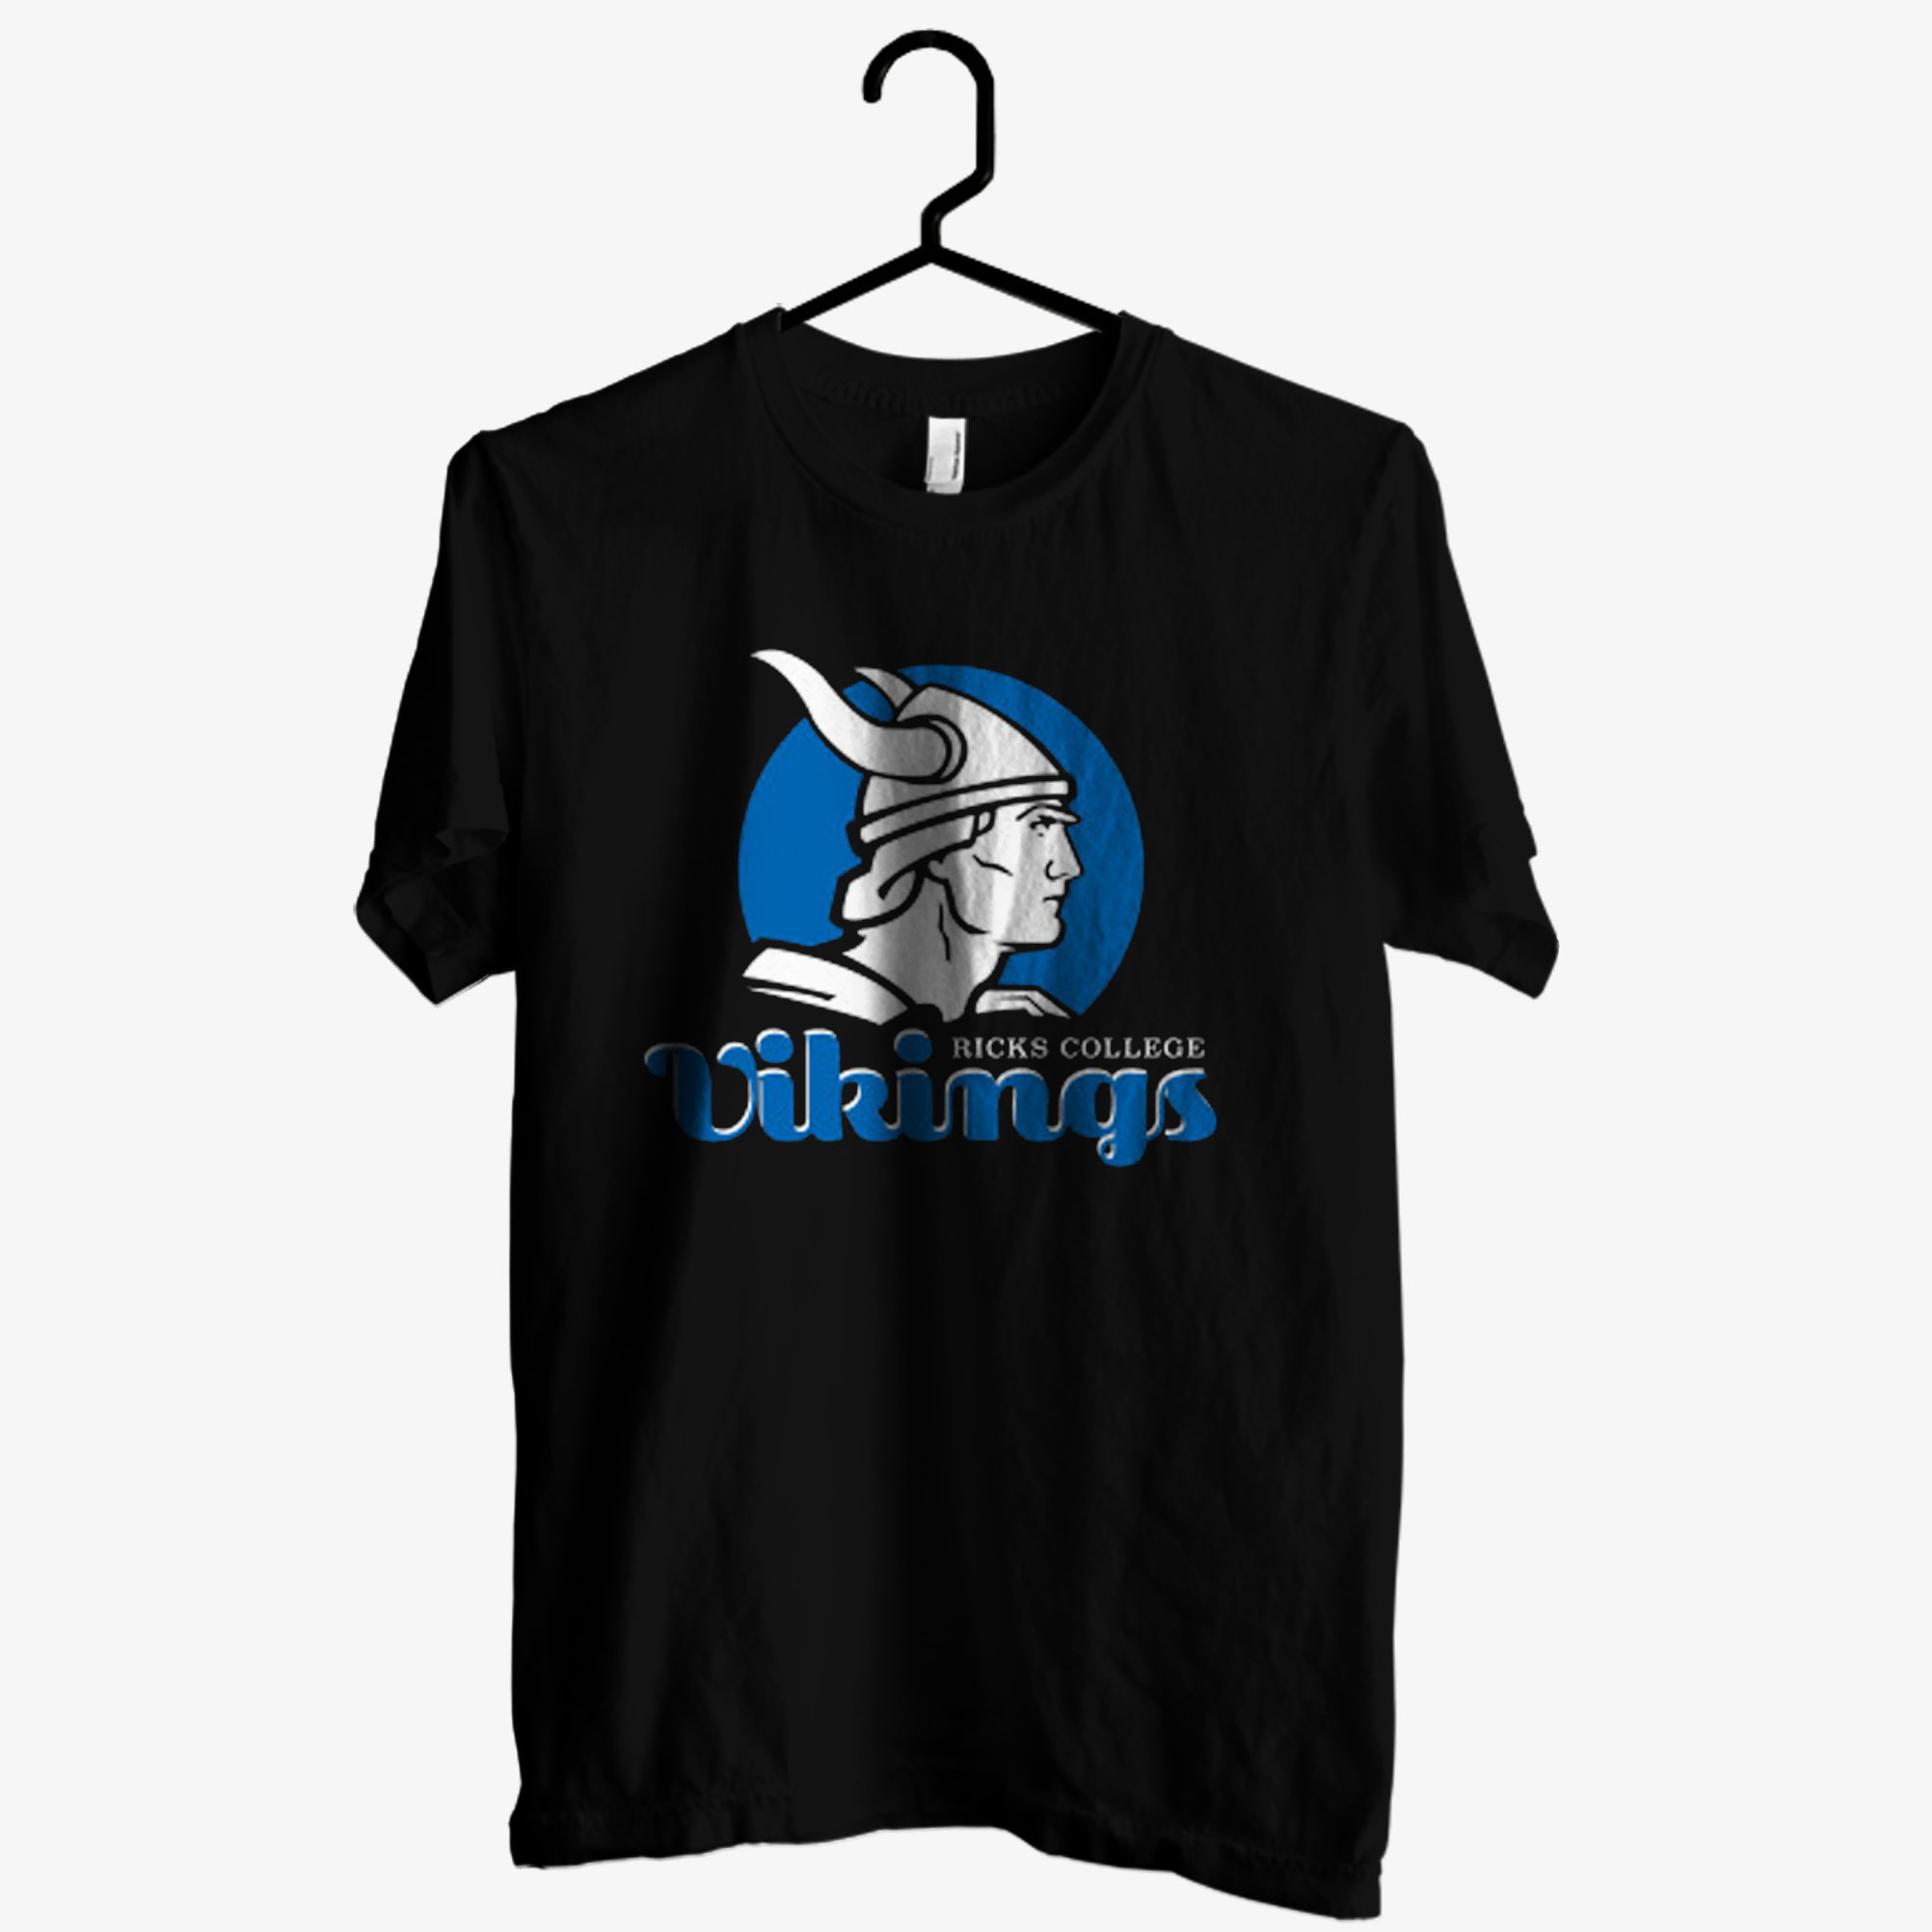 Ricks College Vikings T shirt